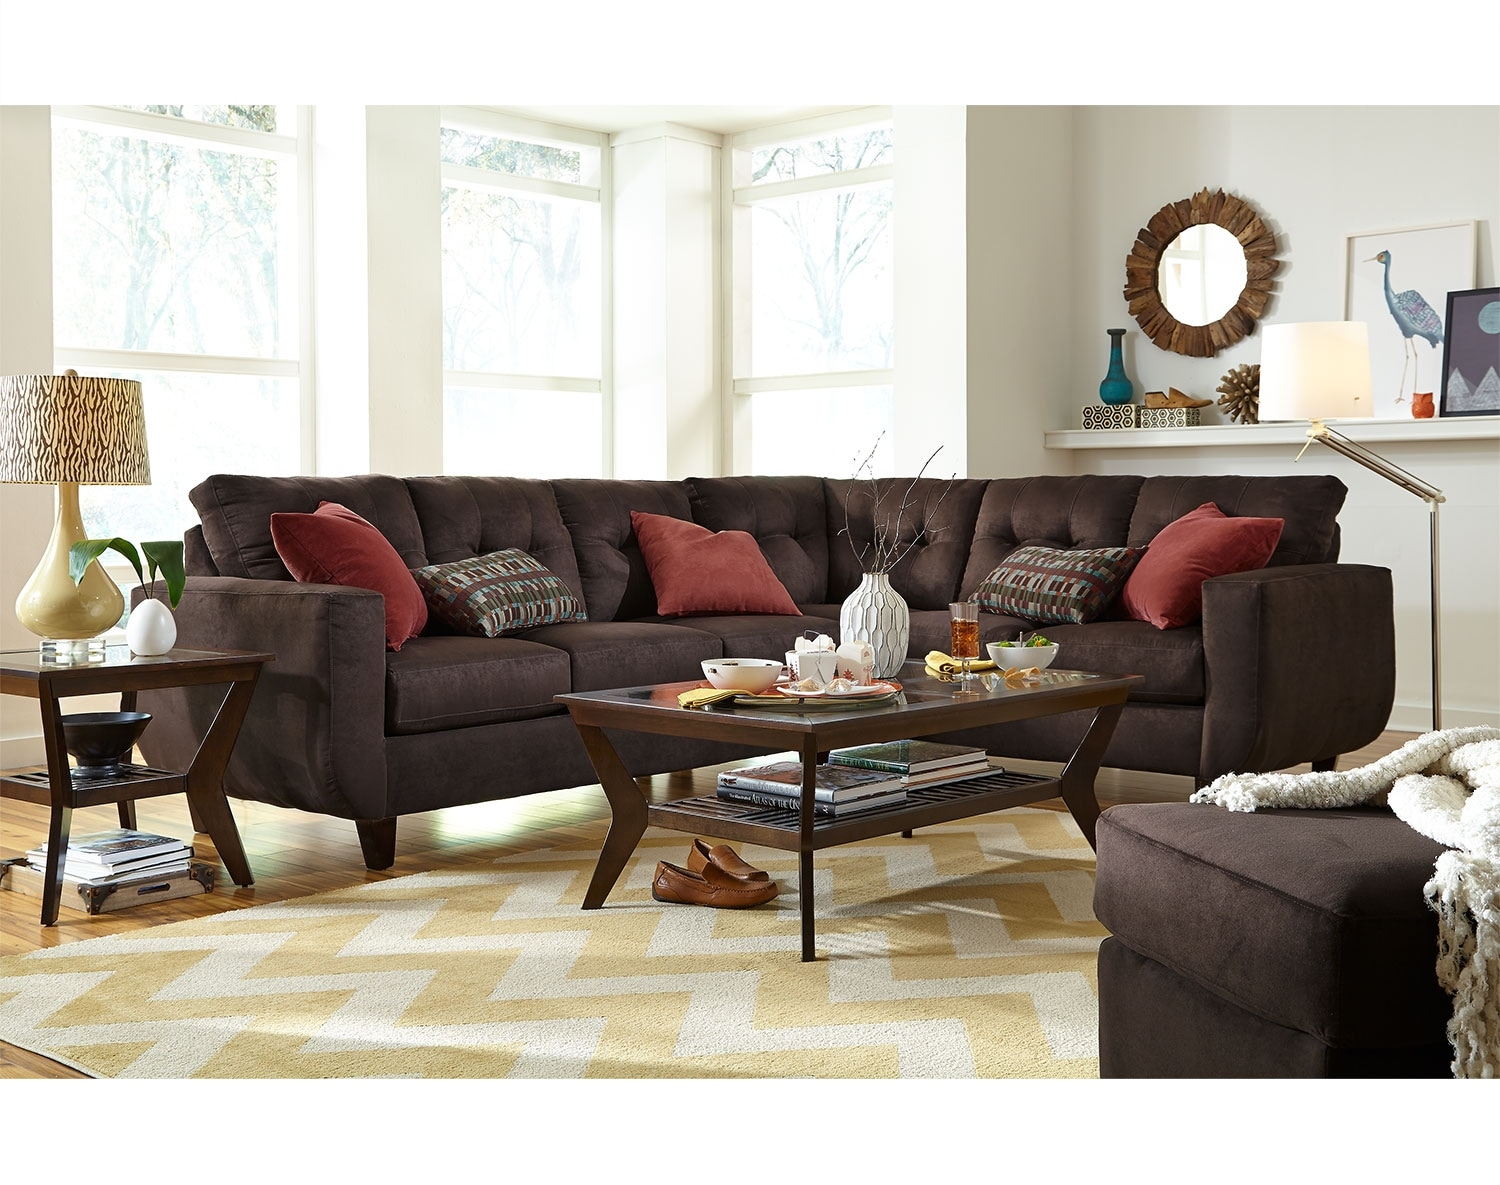 The West Village Sectional Collection - Chocolate